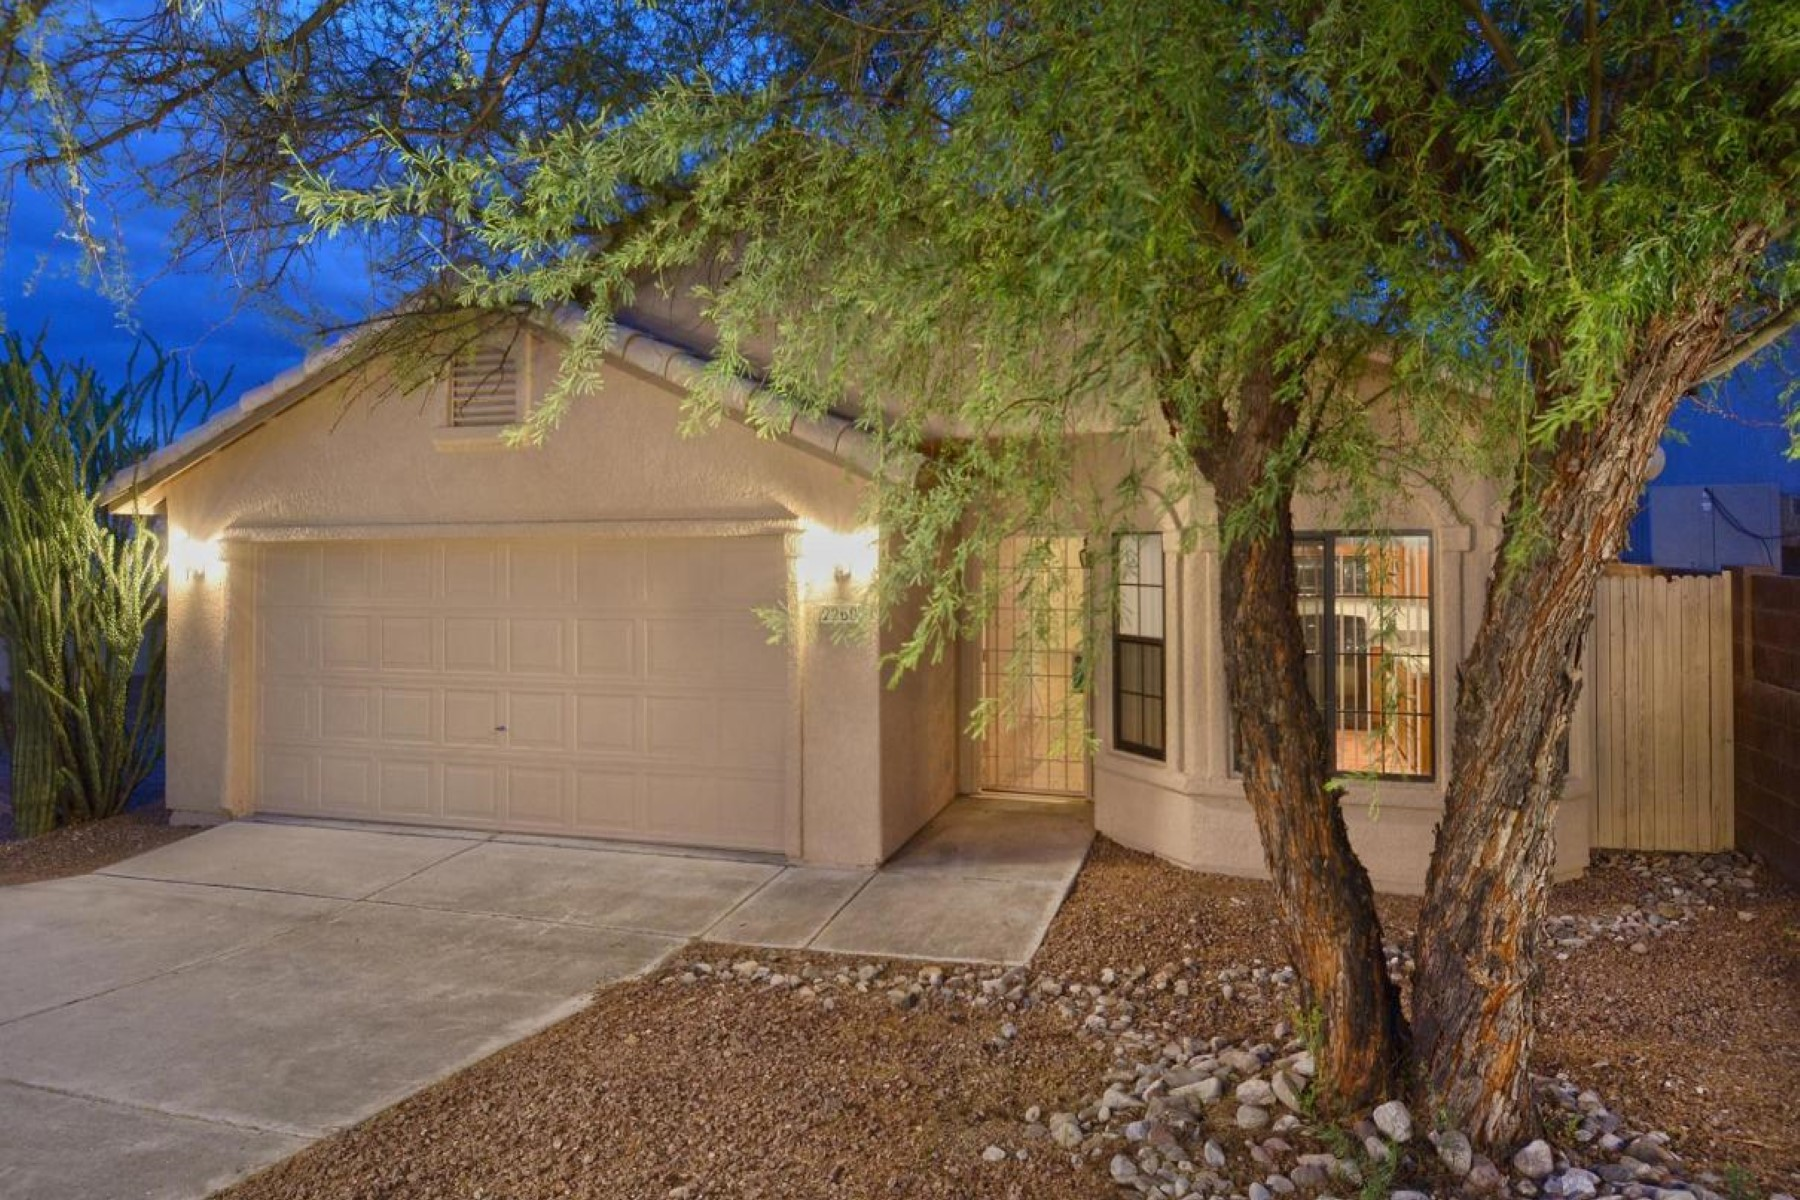 Maison unifamiliale pour l Vente à Charming bright spacious home in immaculate condition. 2260 N Saddlewood Ranch Drive Tucson, Arizona 85745 États-Unis